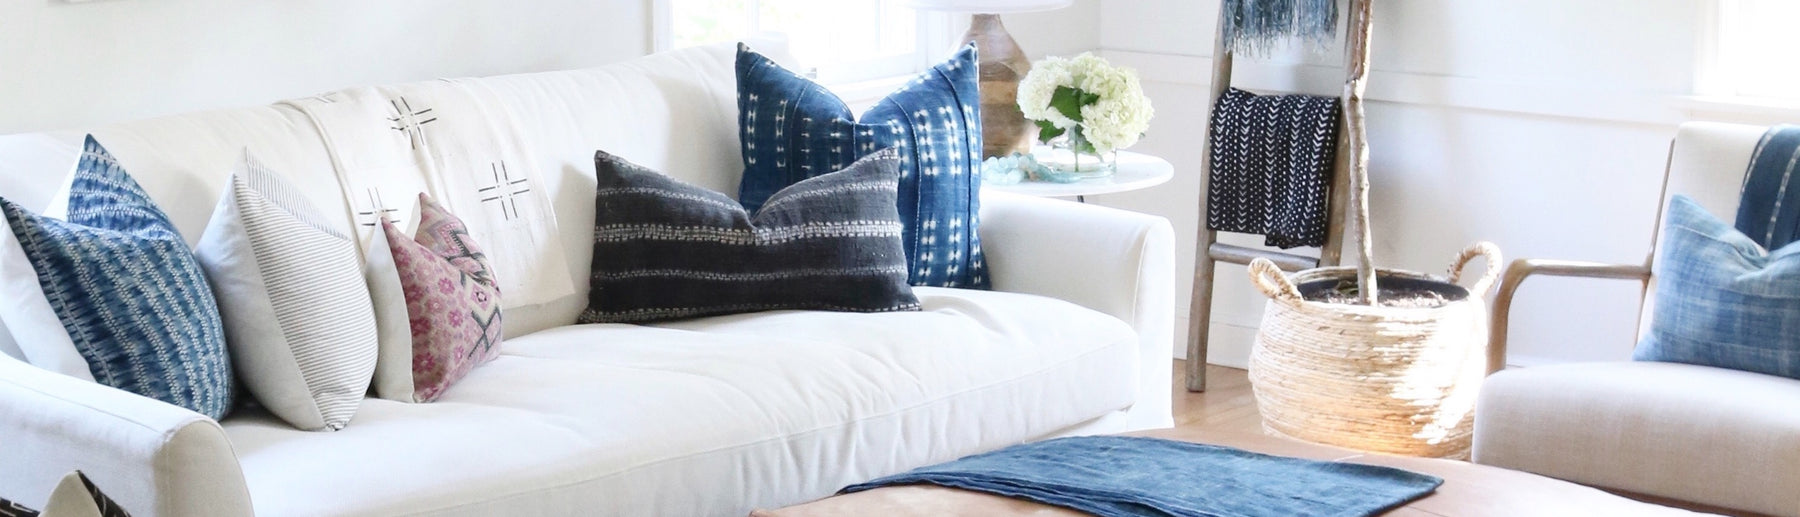 Handmade Designer Pillow Covers-Danielle Oakey Shop Site Home Page Banner Image. Pillows On a white couch.